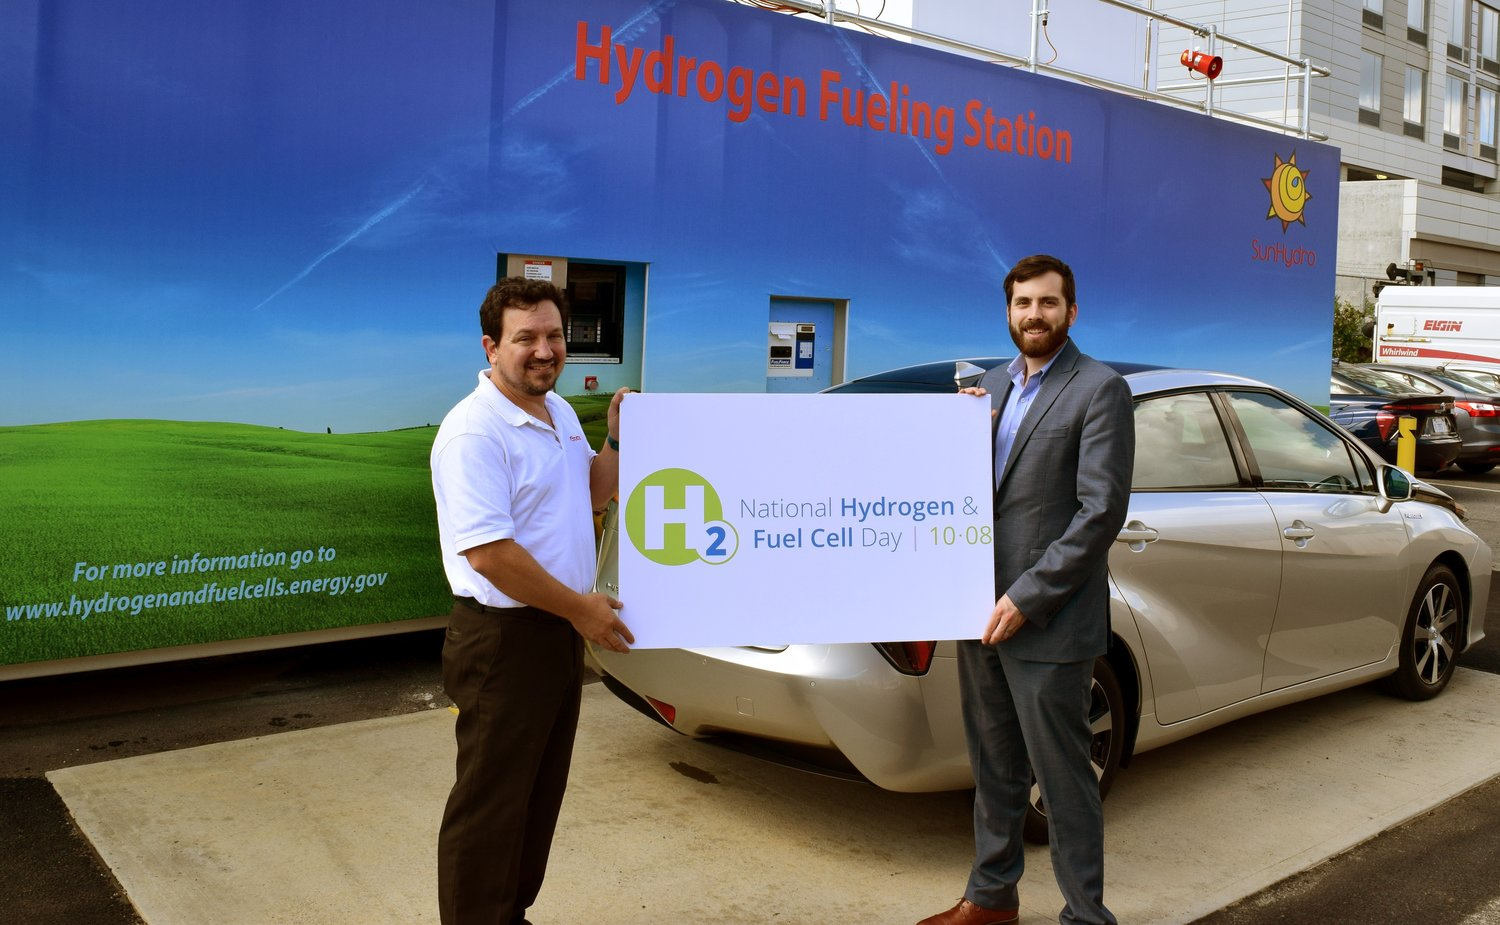 Demonstrative hydrogen fueling station in Washington, D.C. with the Toyota Mirai